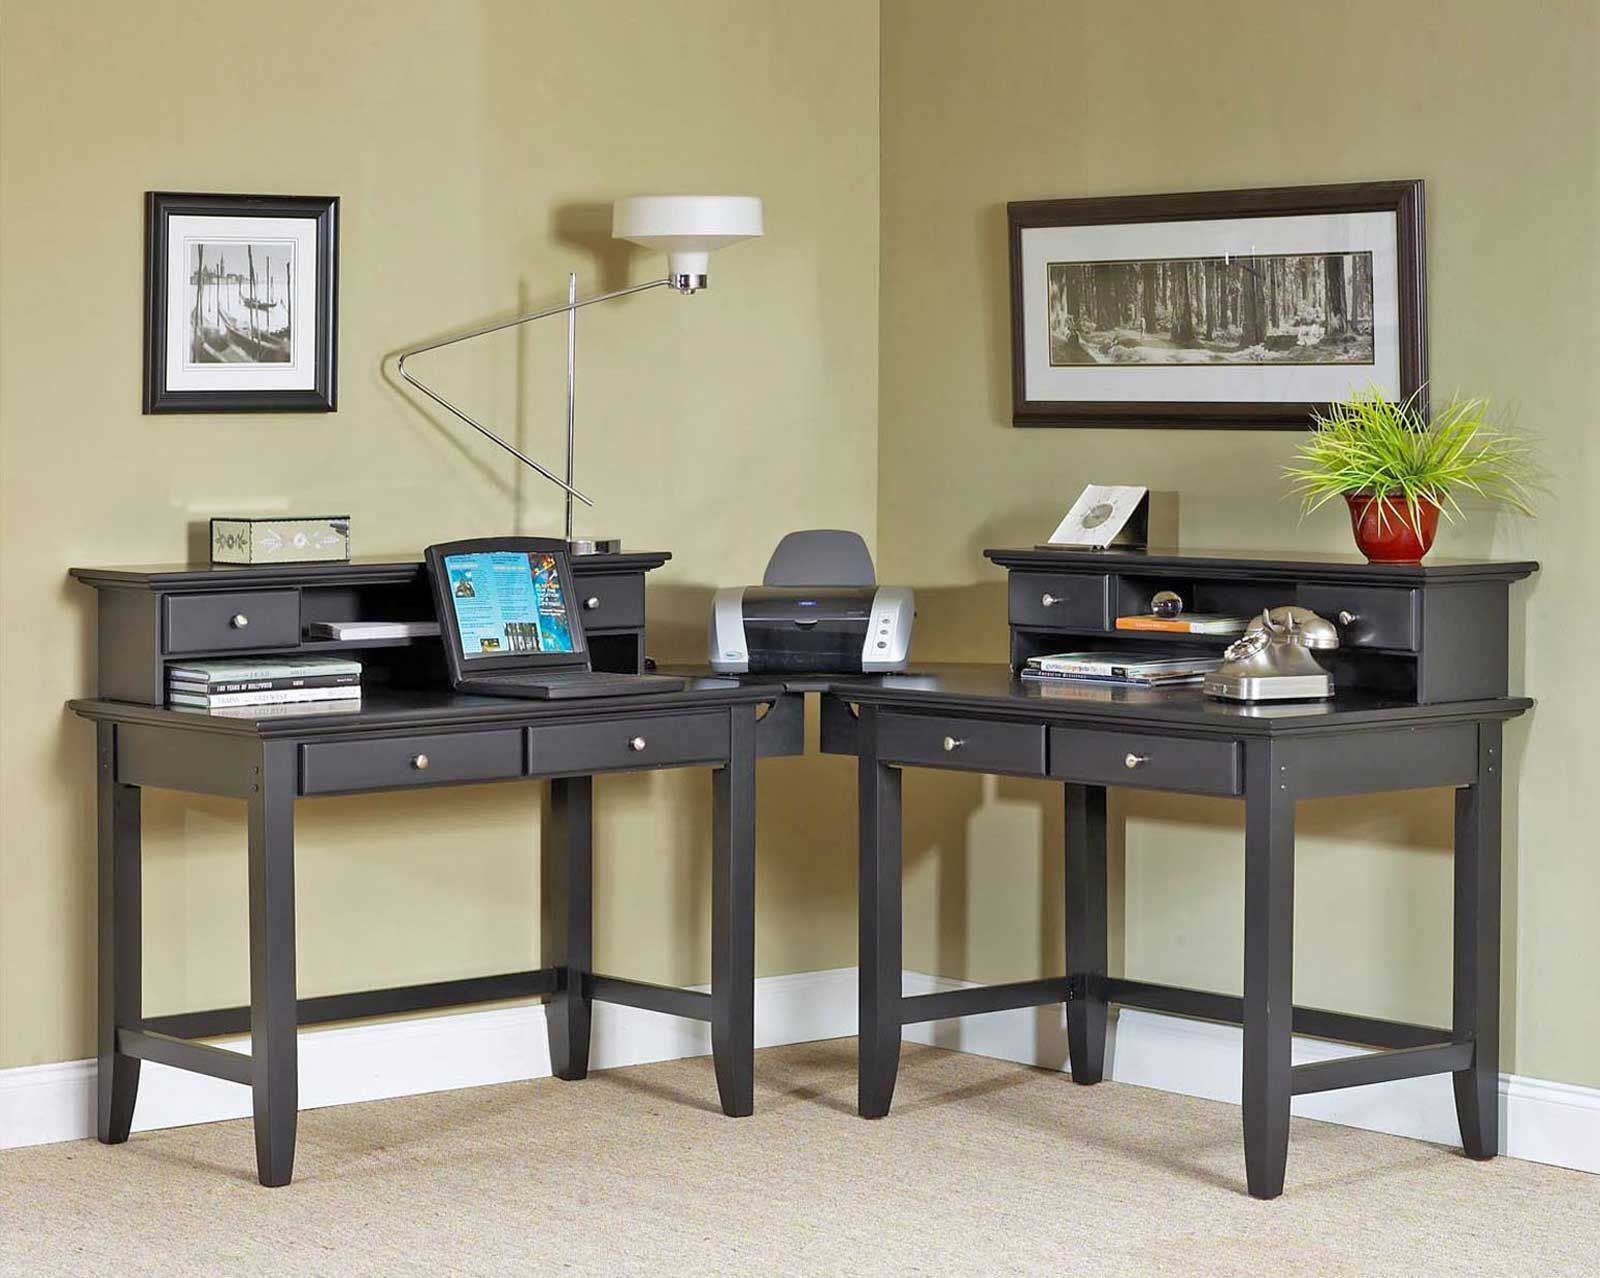 Unique 2 computer desk home office bedford corner computer for Unique computer desk ideas